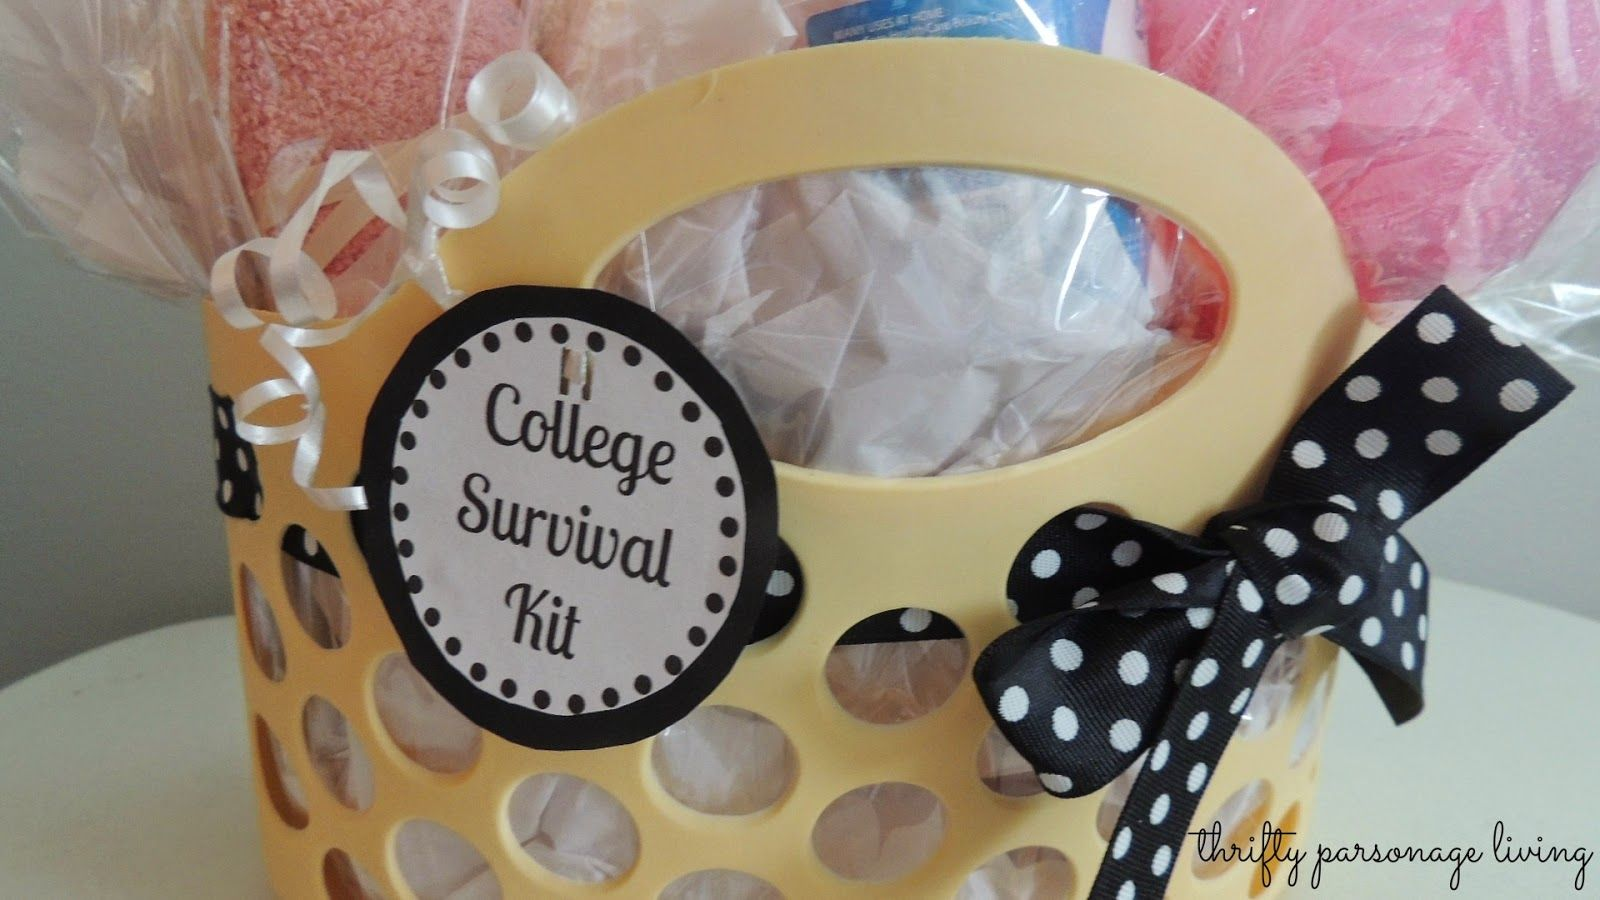 Thrifty parsonage living diy graduation gift college survival kit thrifty parsonage living diy graduation gift college survival kit solutioingenieria Images